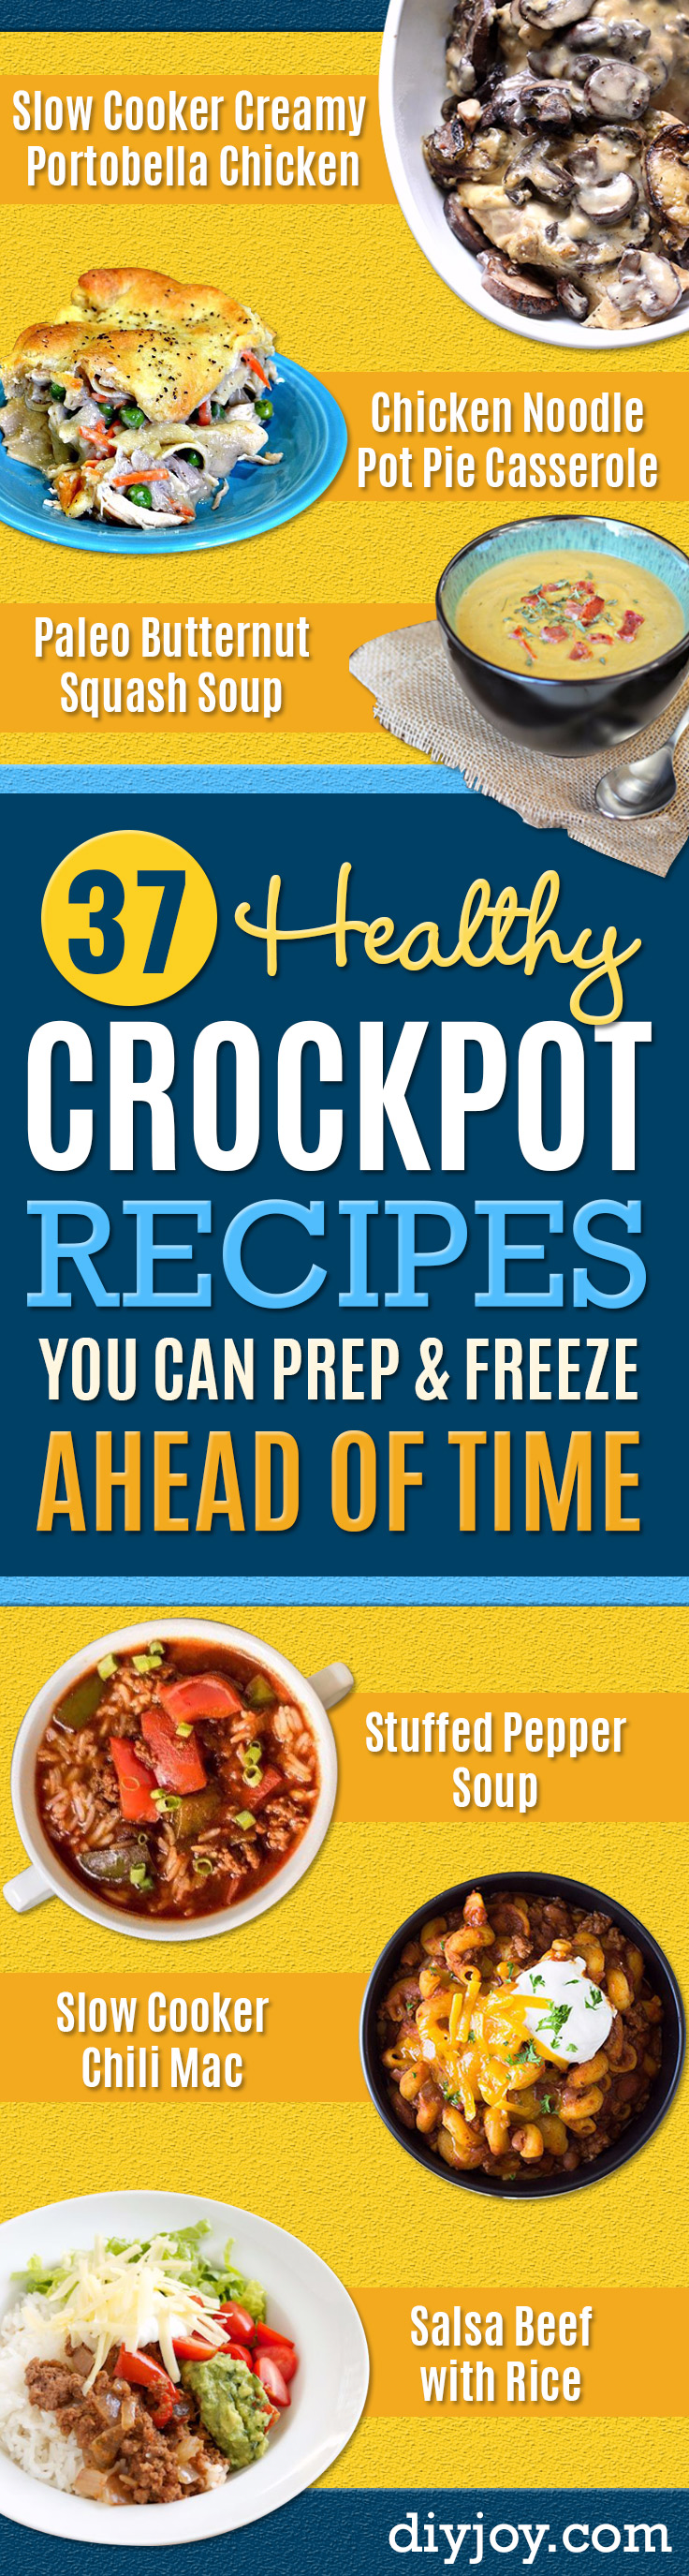 37 healthy crockpot recipes you can prep and freeze ahead of time healthy crockpot recipes to make and freeze ahead easy and quick dinners soups forumfinder Gallery